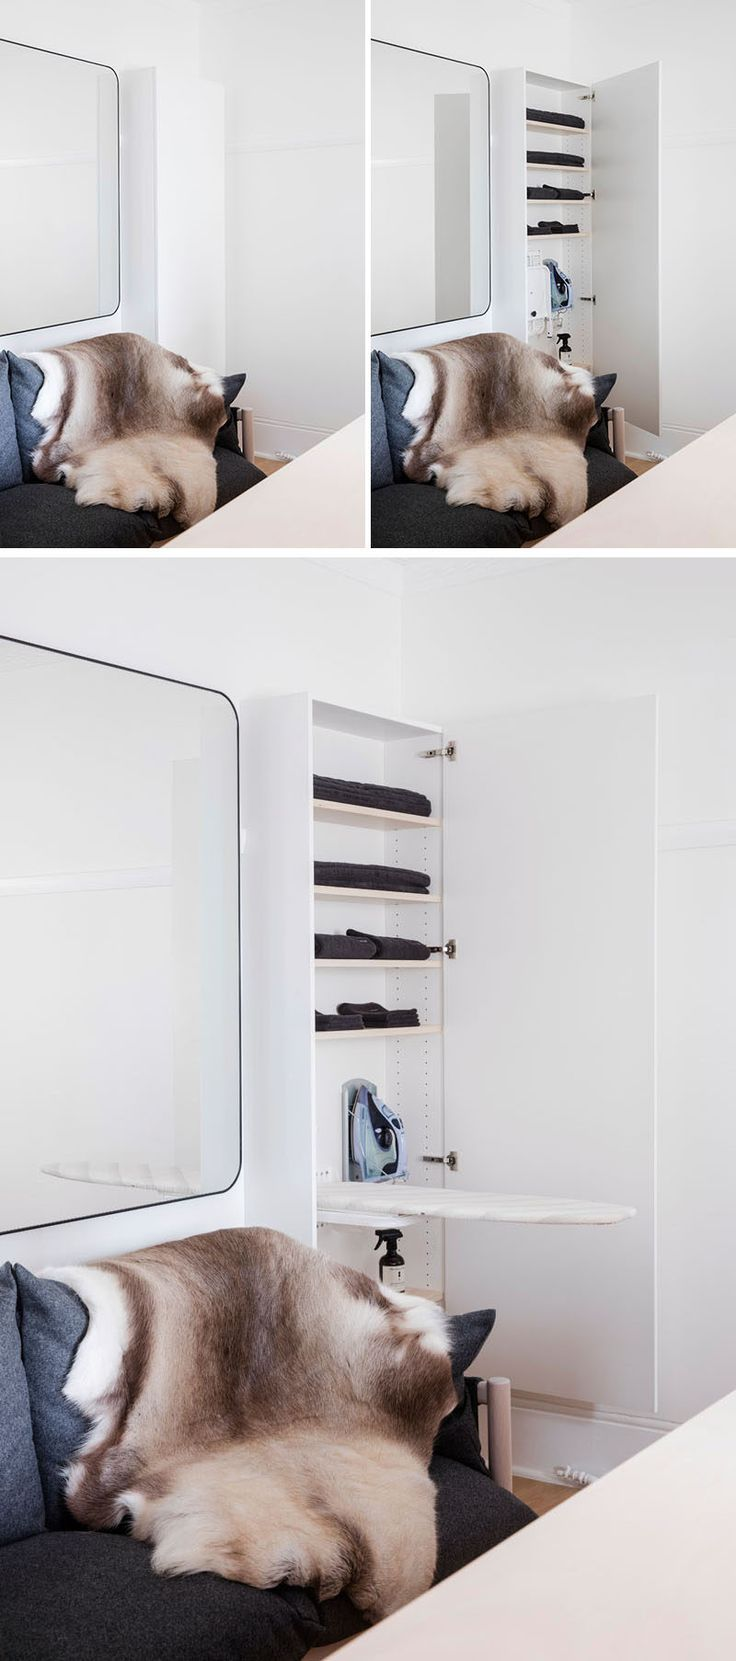 In this small apartment, and off to the side of the couch is a vertical cabinet that houses a fold-out ironing board.